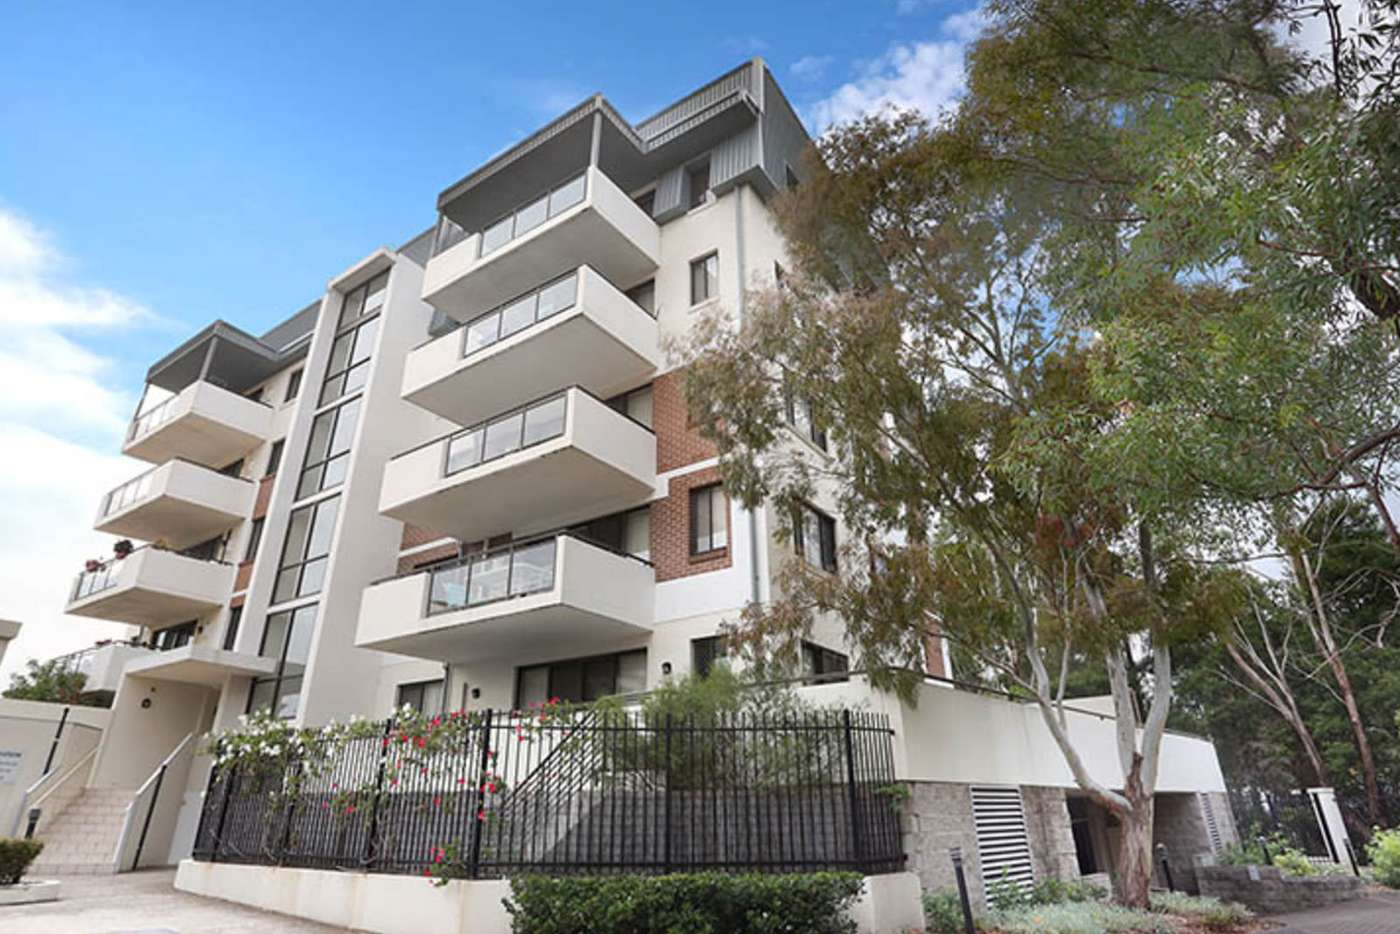 Main view of Homely apartment listing, 503/10 Refractory Court, Holroyd NSW 2142